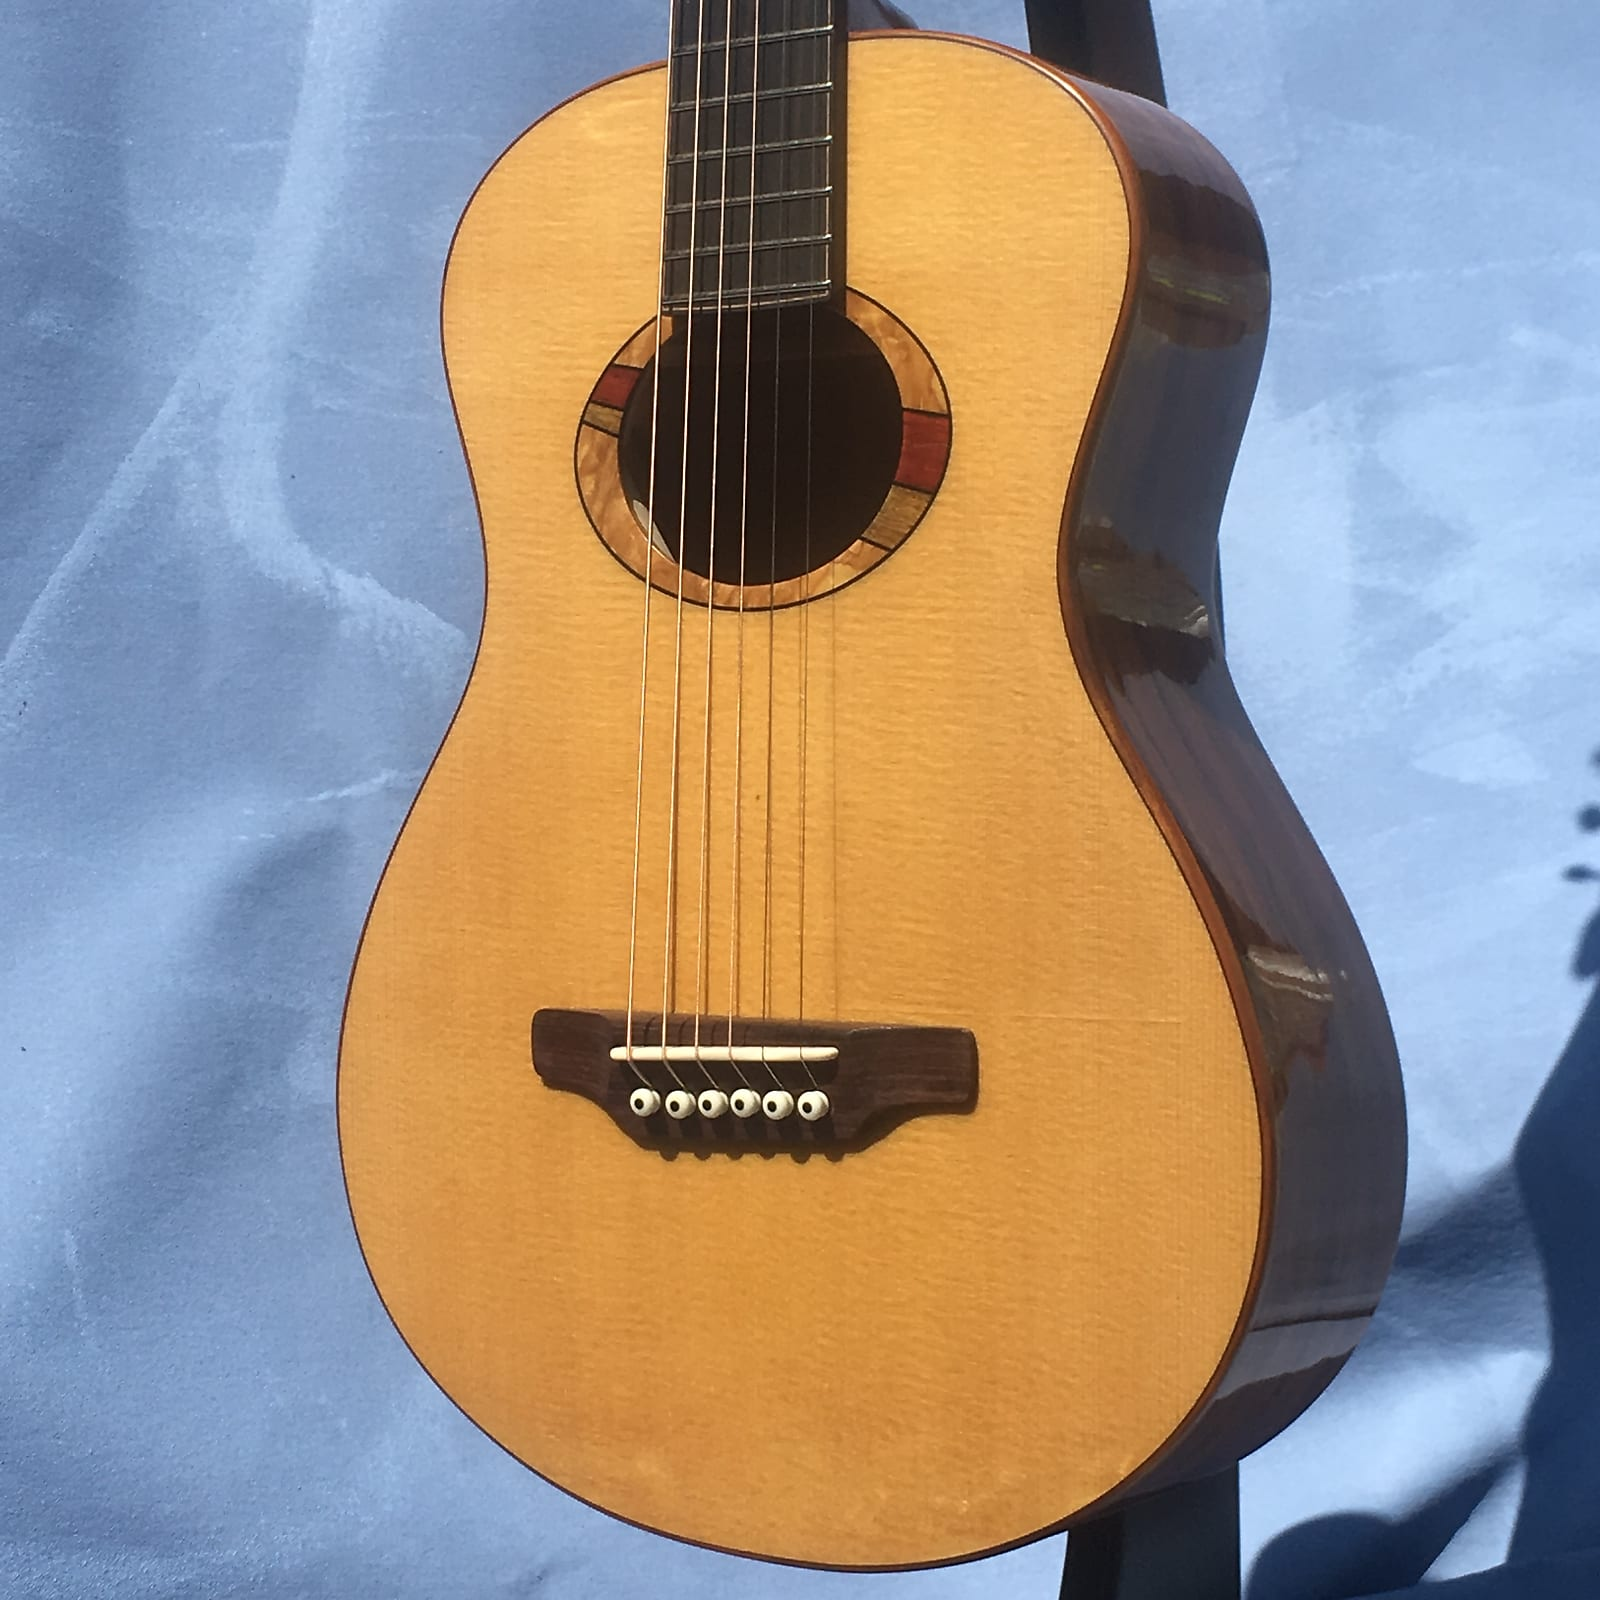 Laughlin RRL Koa Small Body Parlor Guitar